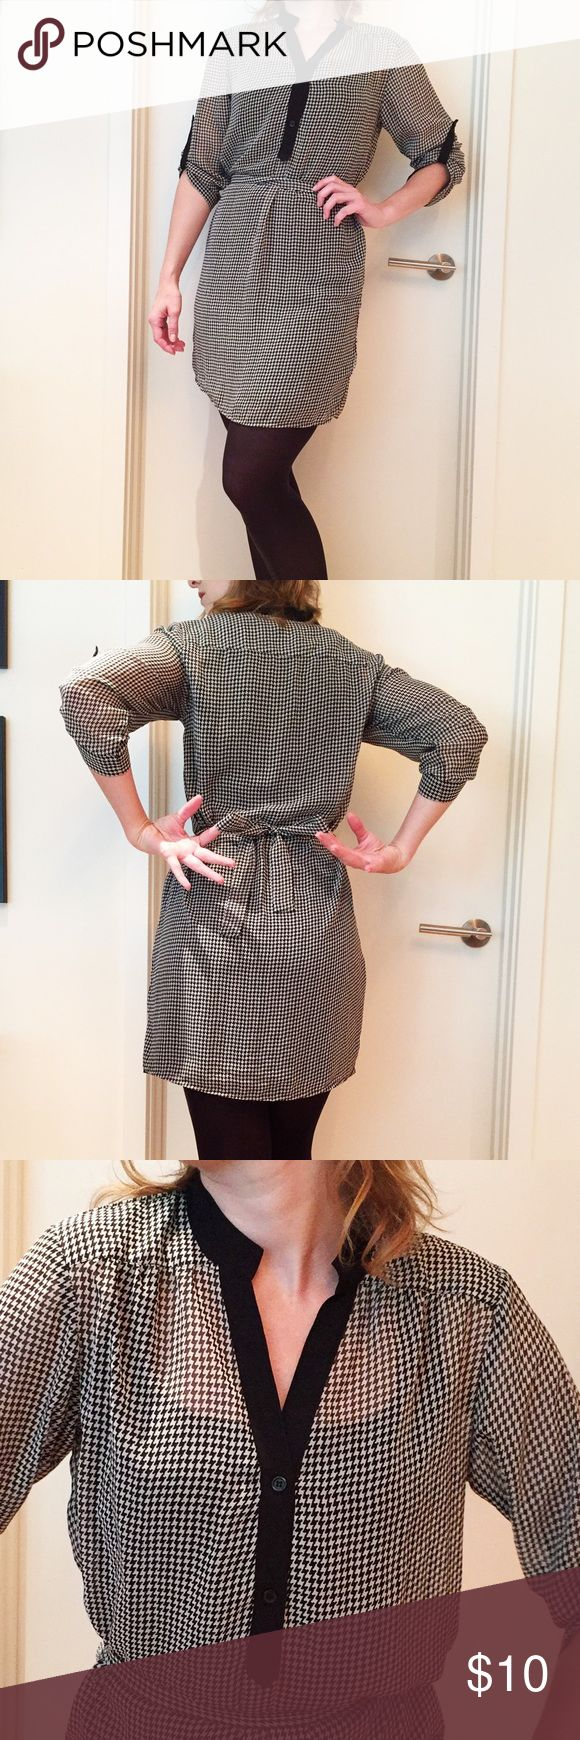 Herringbone shirt dress tunic Classy black and white herringbone sheer shirt dress or tunic. Super cute over leggings with boots. Get on the heritage fabric pattern trend! Tacera Dresses Long Sleeve